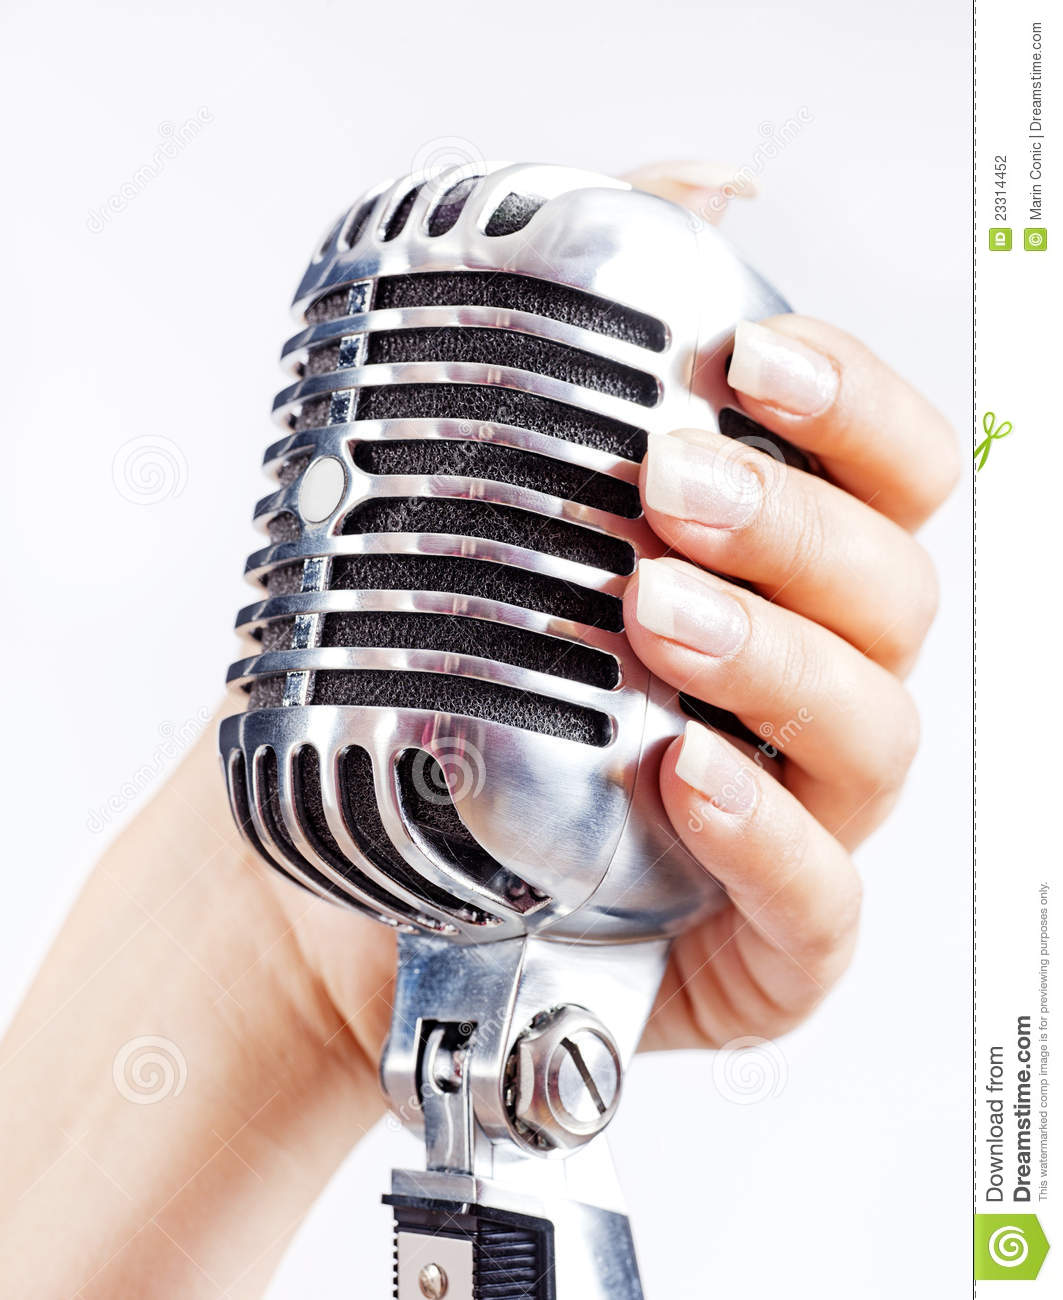 Microphone In Hand : Retro microphone in woman s hand stock photography image